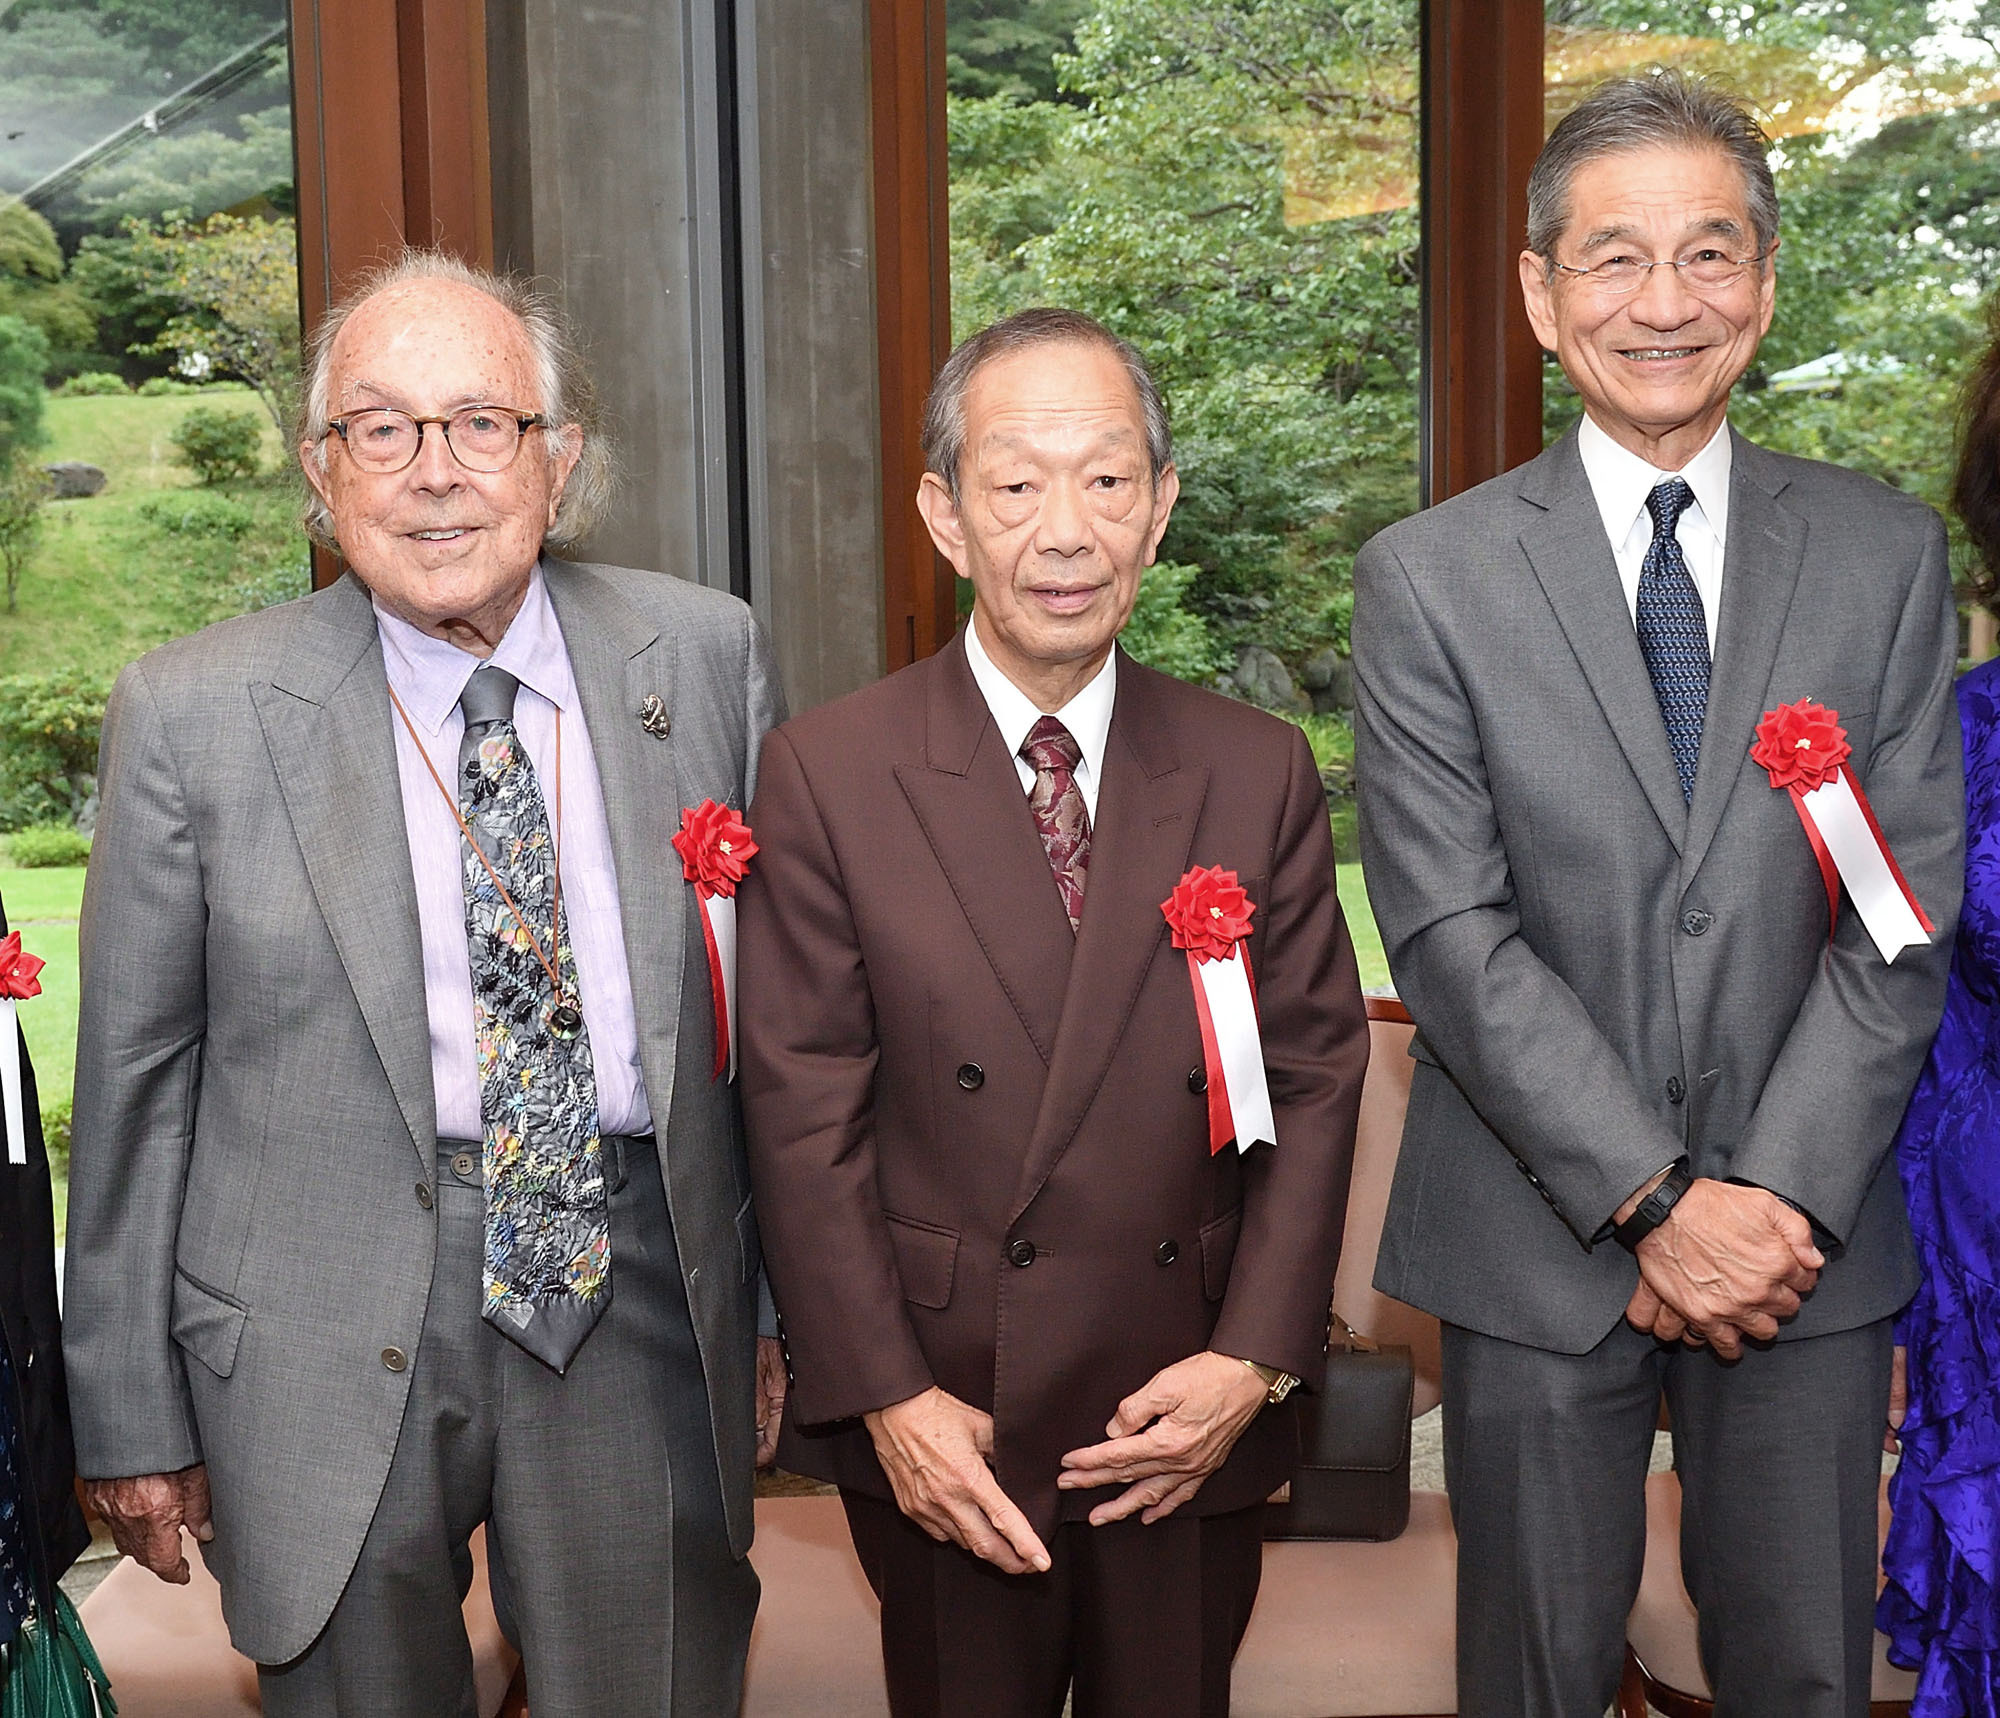 The Kentaro Kaneko Award was founded to commemorate the centennial of the America-Japan Society, which was established in 1917. Yasuhiro Yabuzoe (center) from Wakayama Prefecture and John Ino (right), nephew of recipient Jean Tsuchiya of Los Angeles, California, were named as the first recipients of the award, posing for a photograph on Oct. 11 alongside Joe Price of San Diego, who received a special award. |  COURTESY OF THE AMERICA-JAPAN SOCIETY